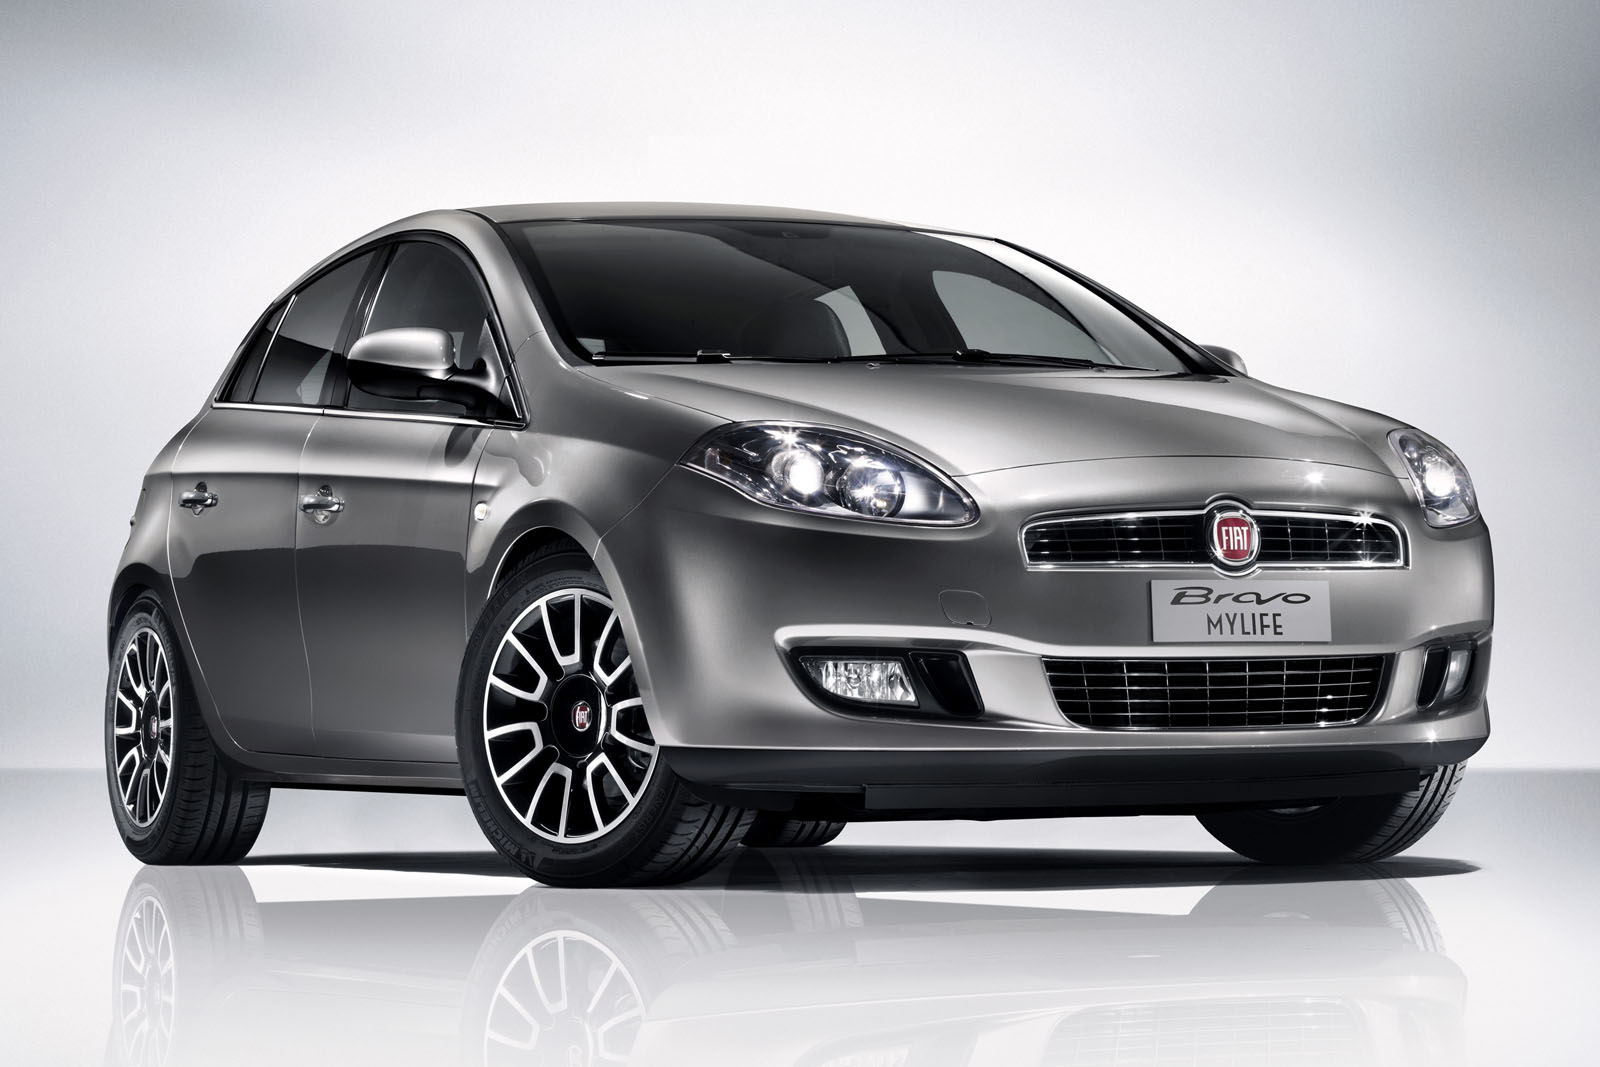 Fiat Bravo MyLife Introducing Fiat MYLIFE to give momentum to Bravo sales